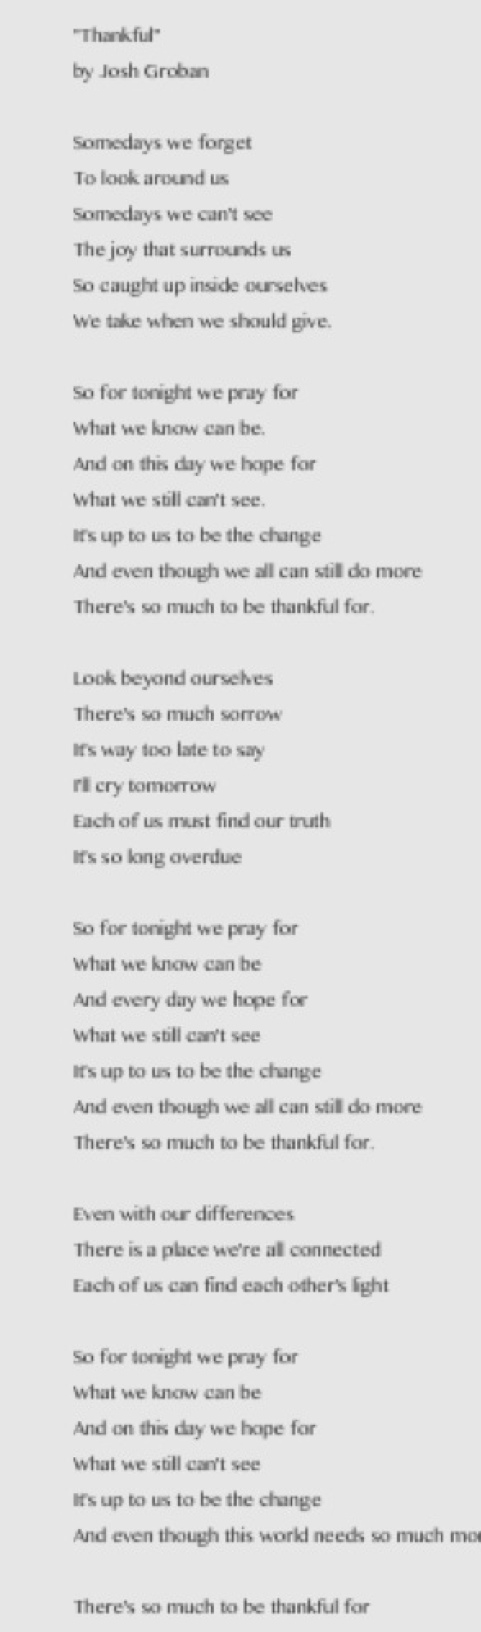 Lyric polar express lyrics : Thankful